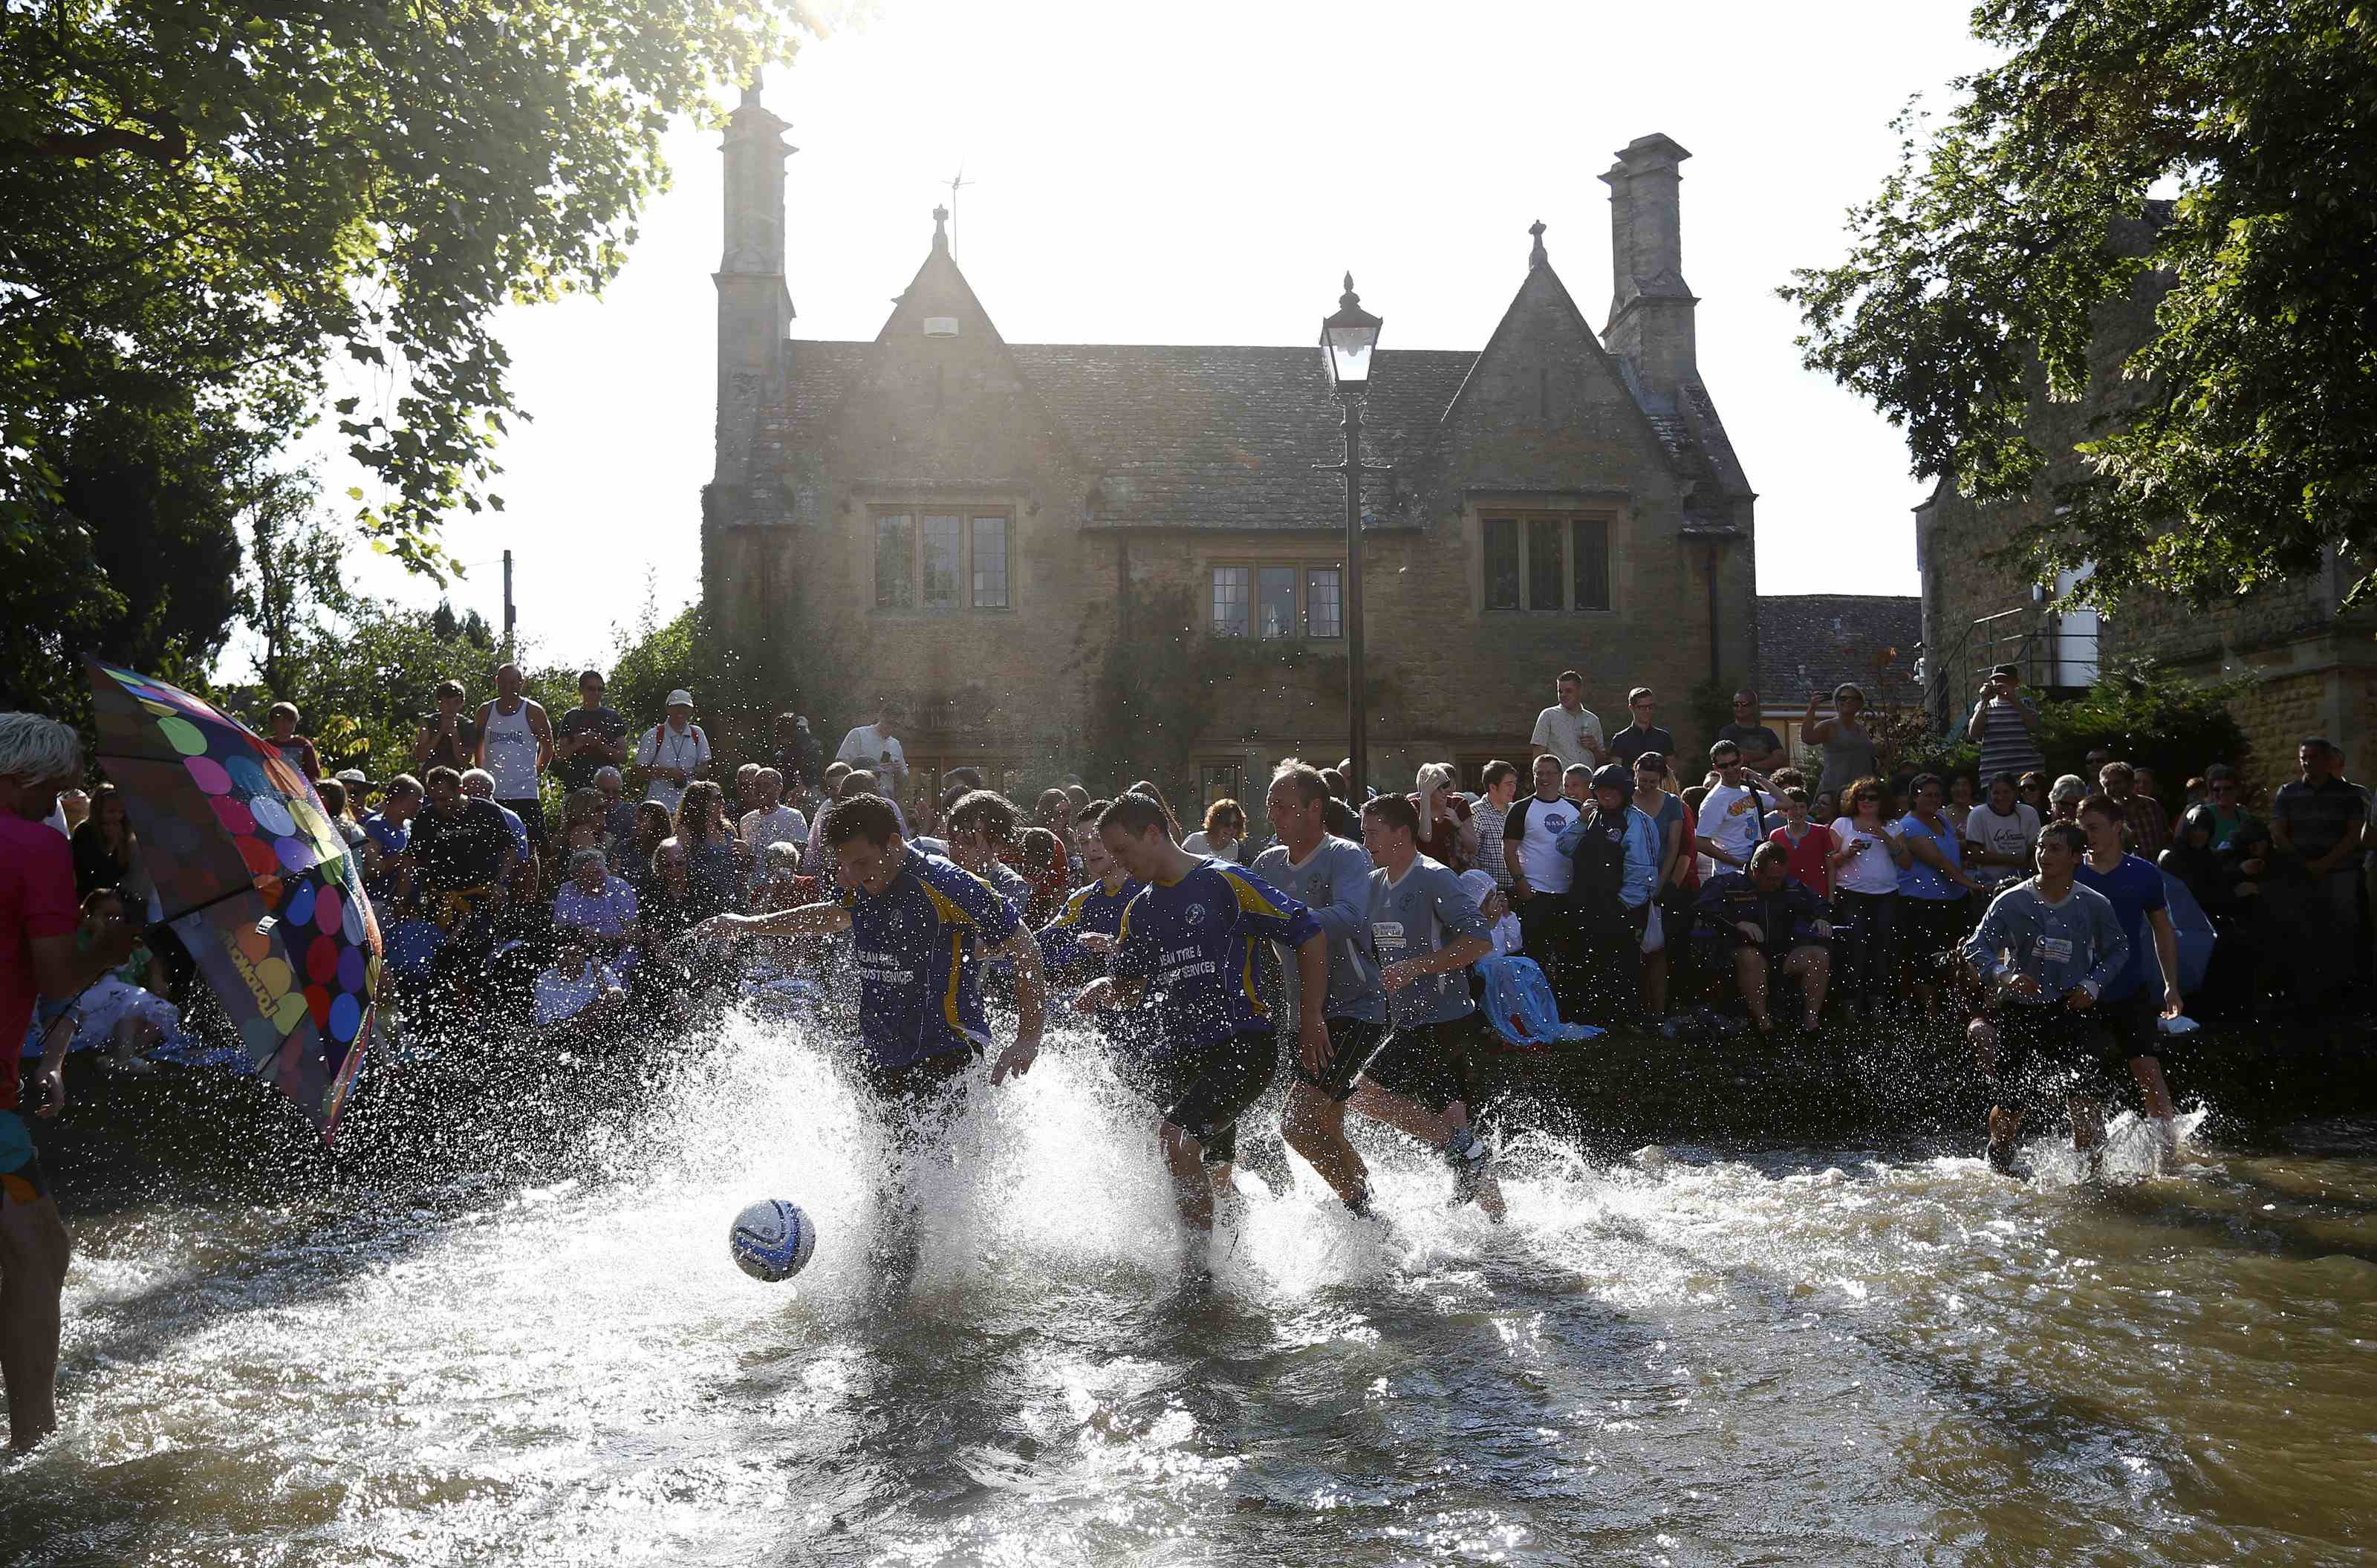 BOURTON FOOTBALL IN THE RIVER